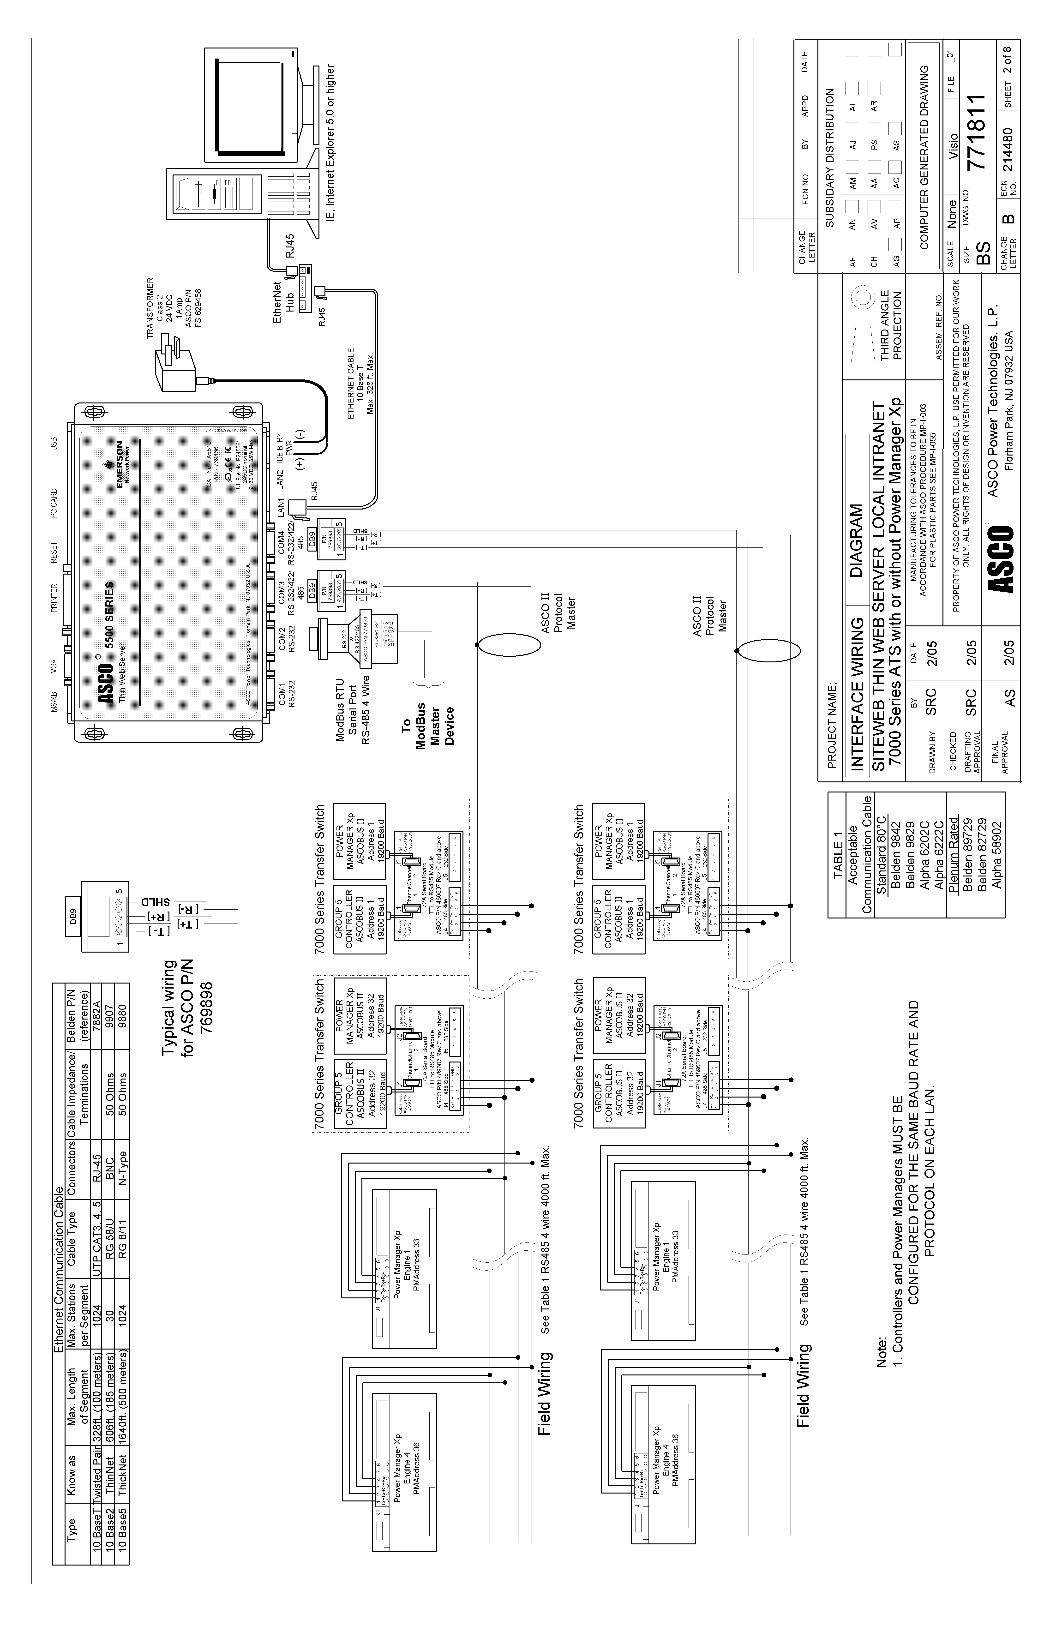 asco 7000 series ats wiring diagram Collection-Htmlconvd Eehbwk9x1 Atlas Copco Gx11 Service Manual Asco Wiring 1 Asco 300 Wiring Diagram 9-j